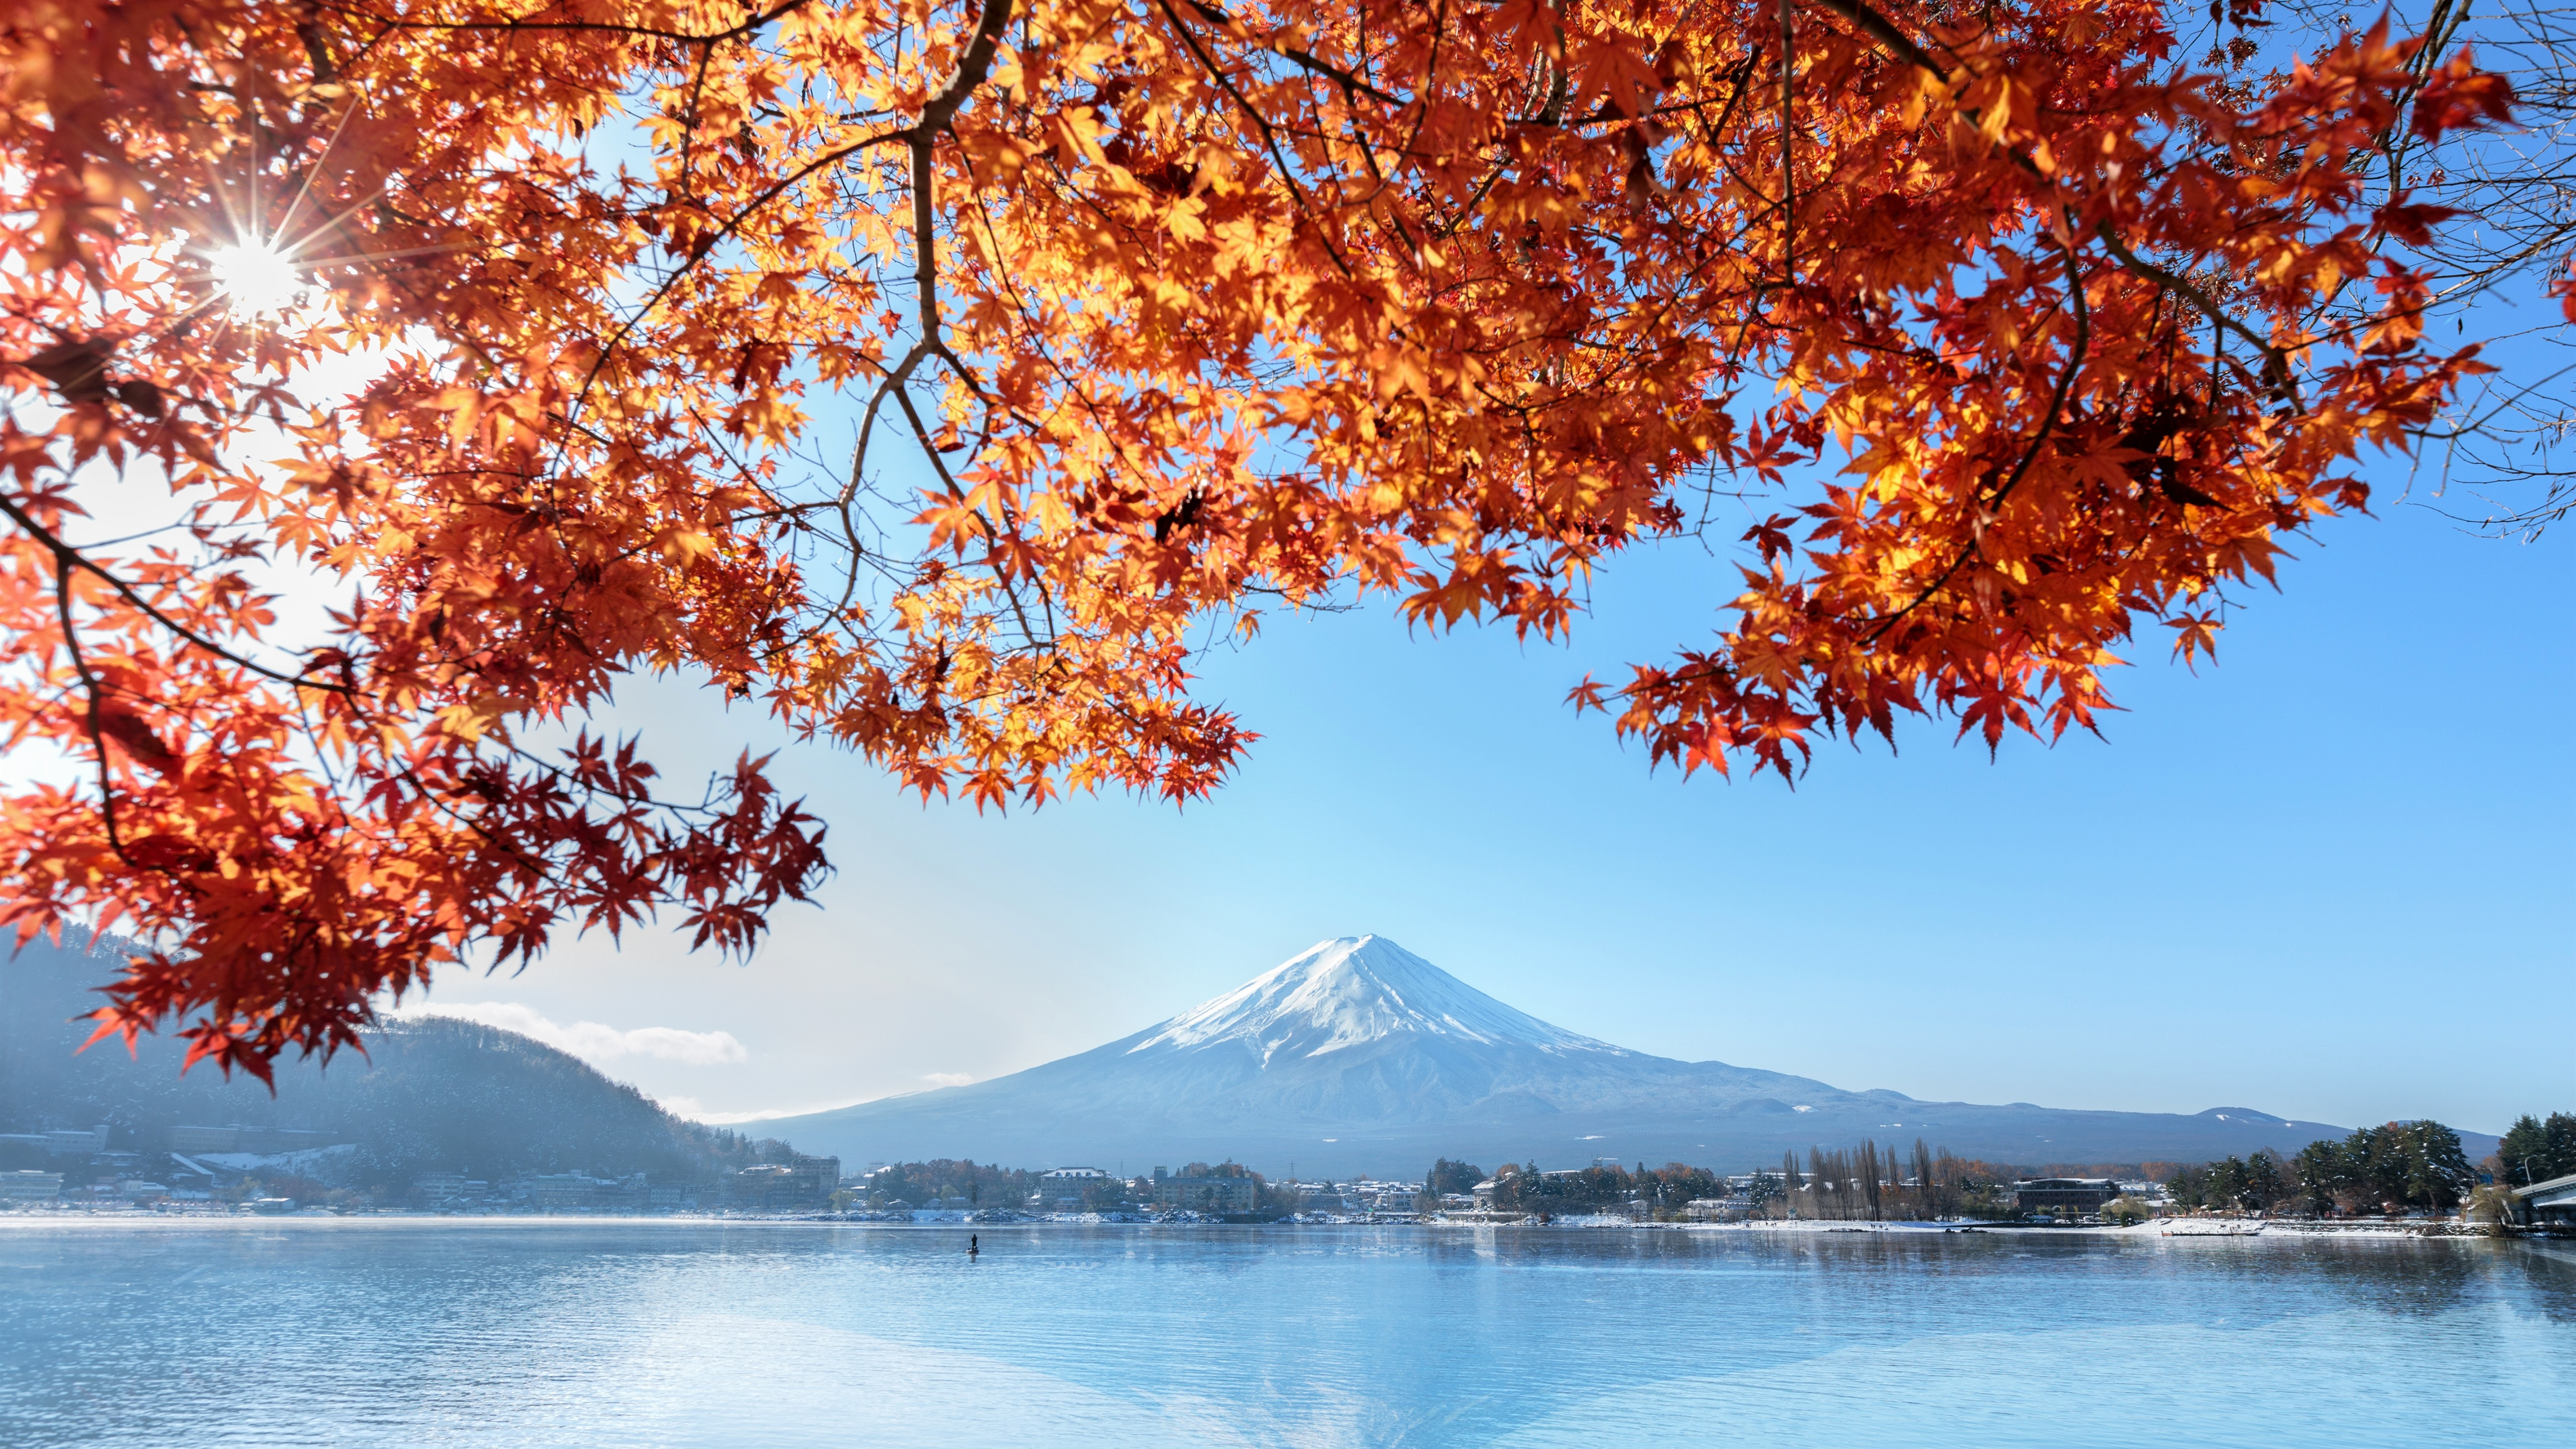 Wallpaper Fuji Mountain Red Maple Leaves Lake Autumn